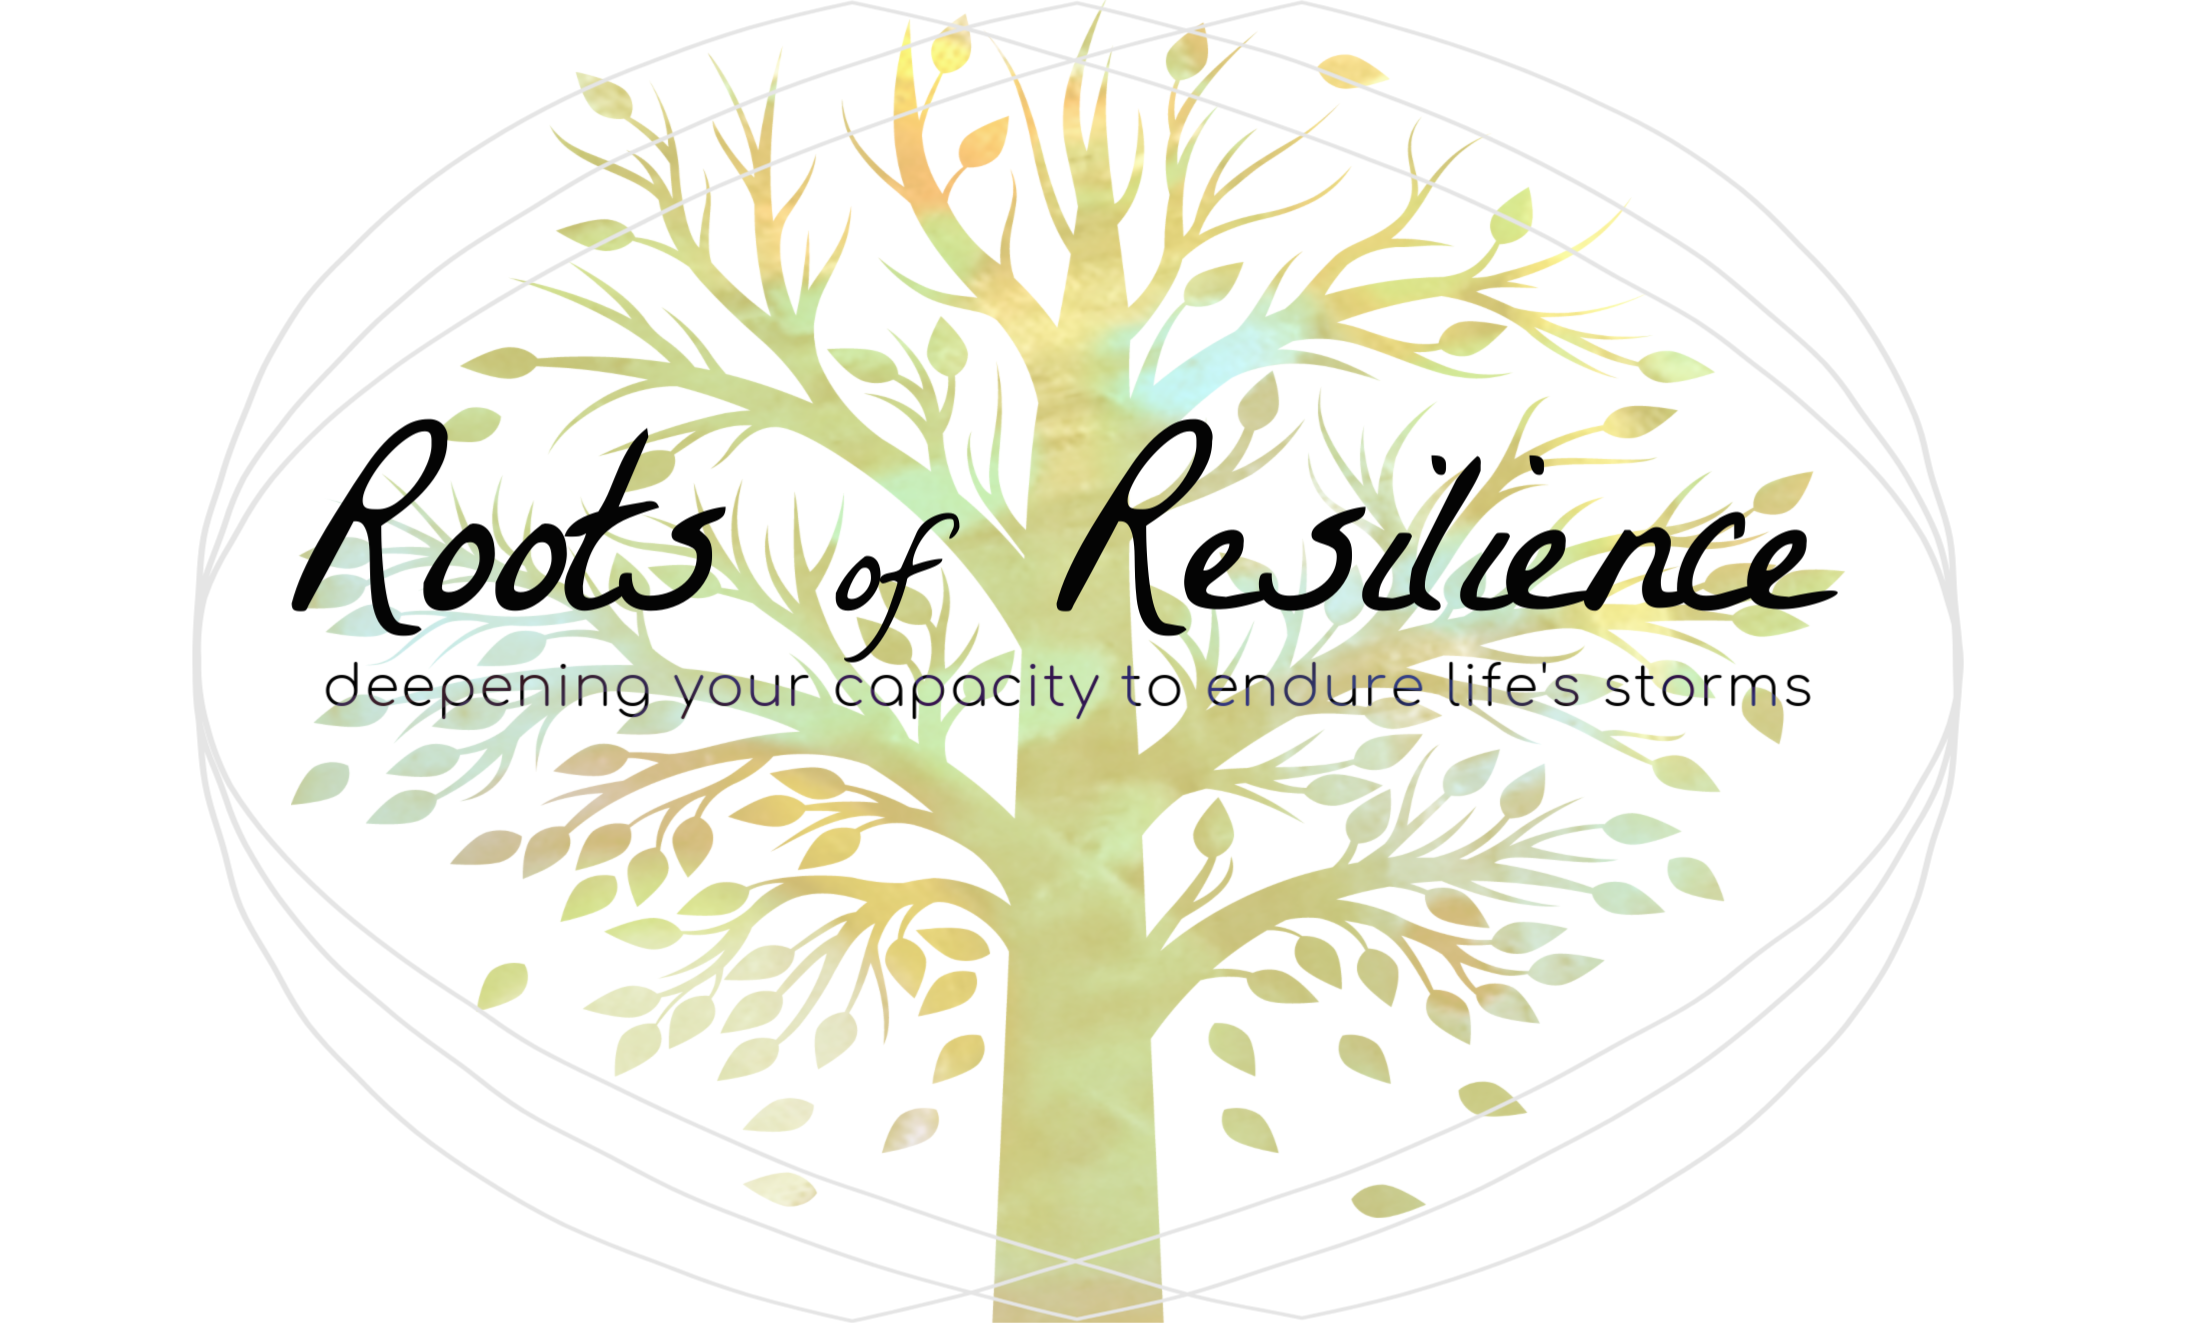 roots of resilience logoLG.png